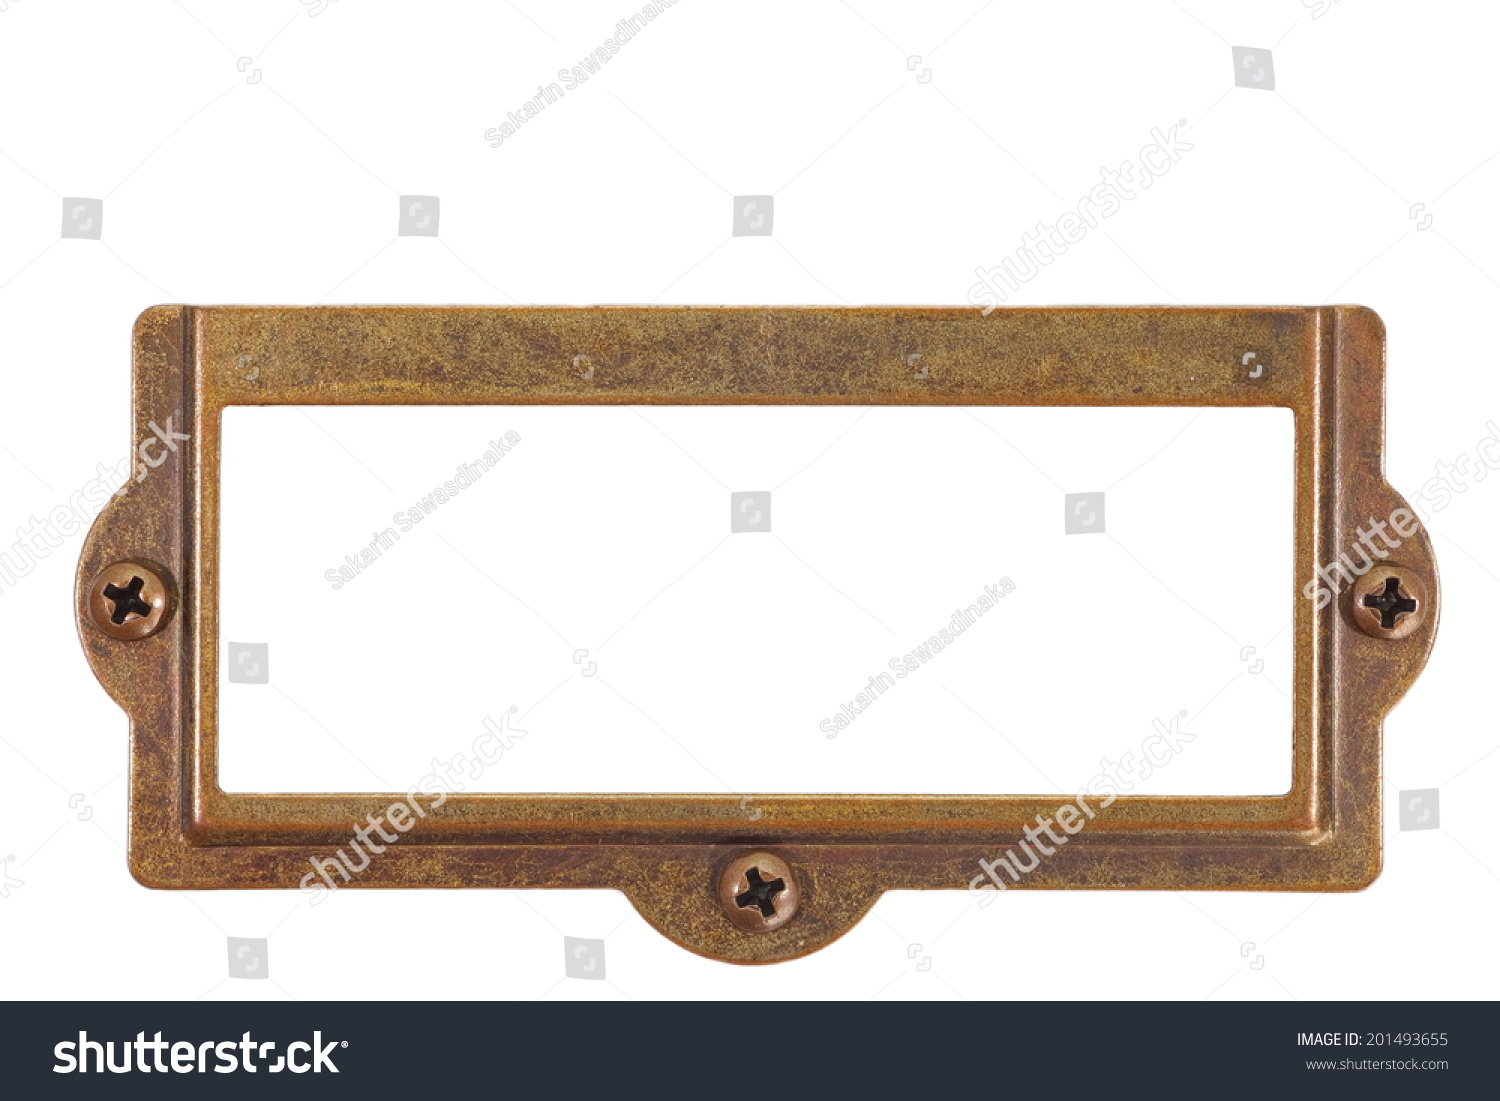 Antique Brass Name Plate Stock Photo 201493655 Shutterstock